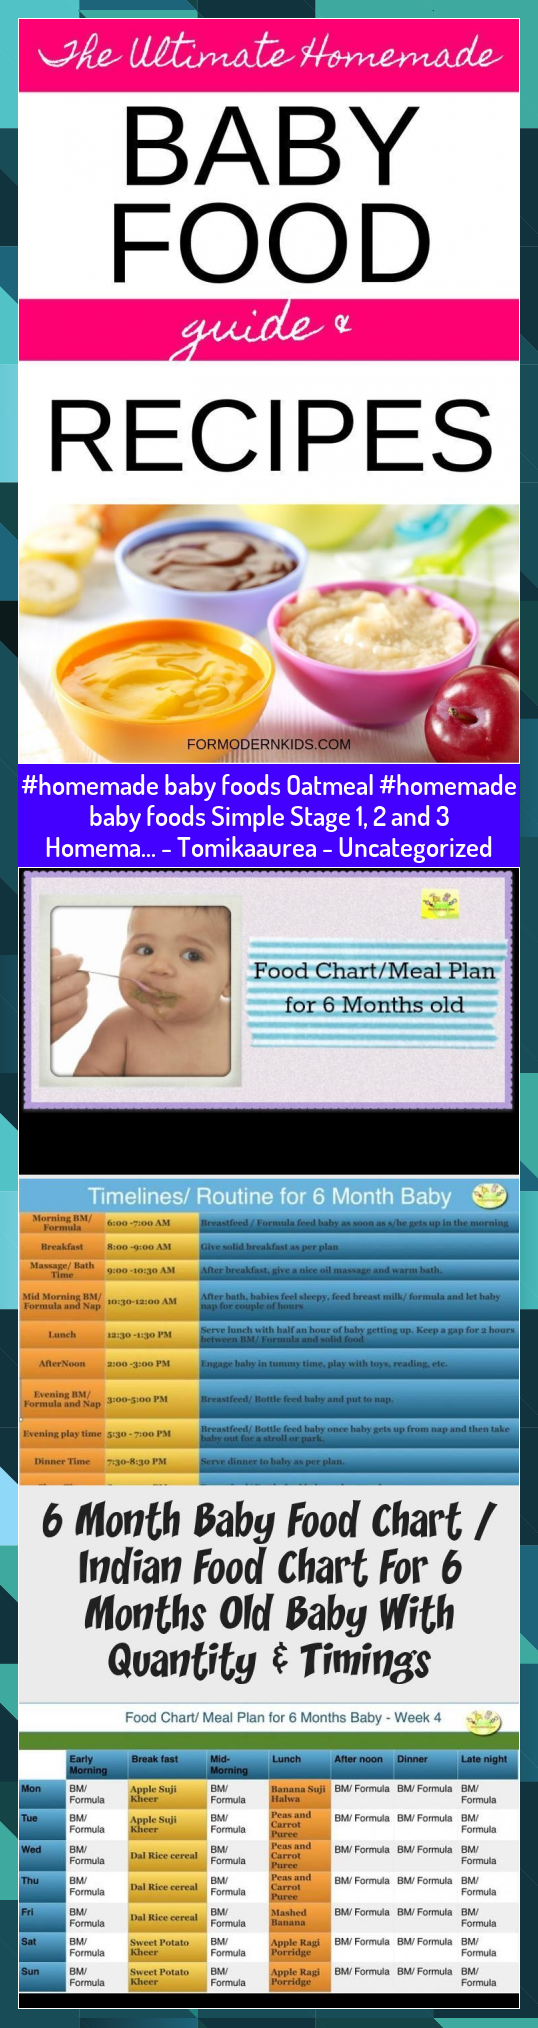 baby foods Oatmeal baby foods Simple Stage 1 2 and 3 Homema  Tomikaaurea  Uncategorized